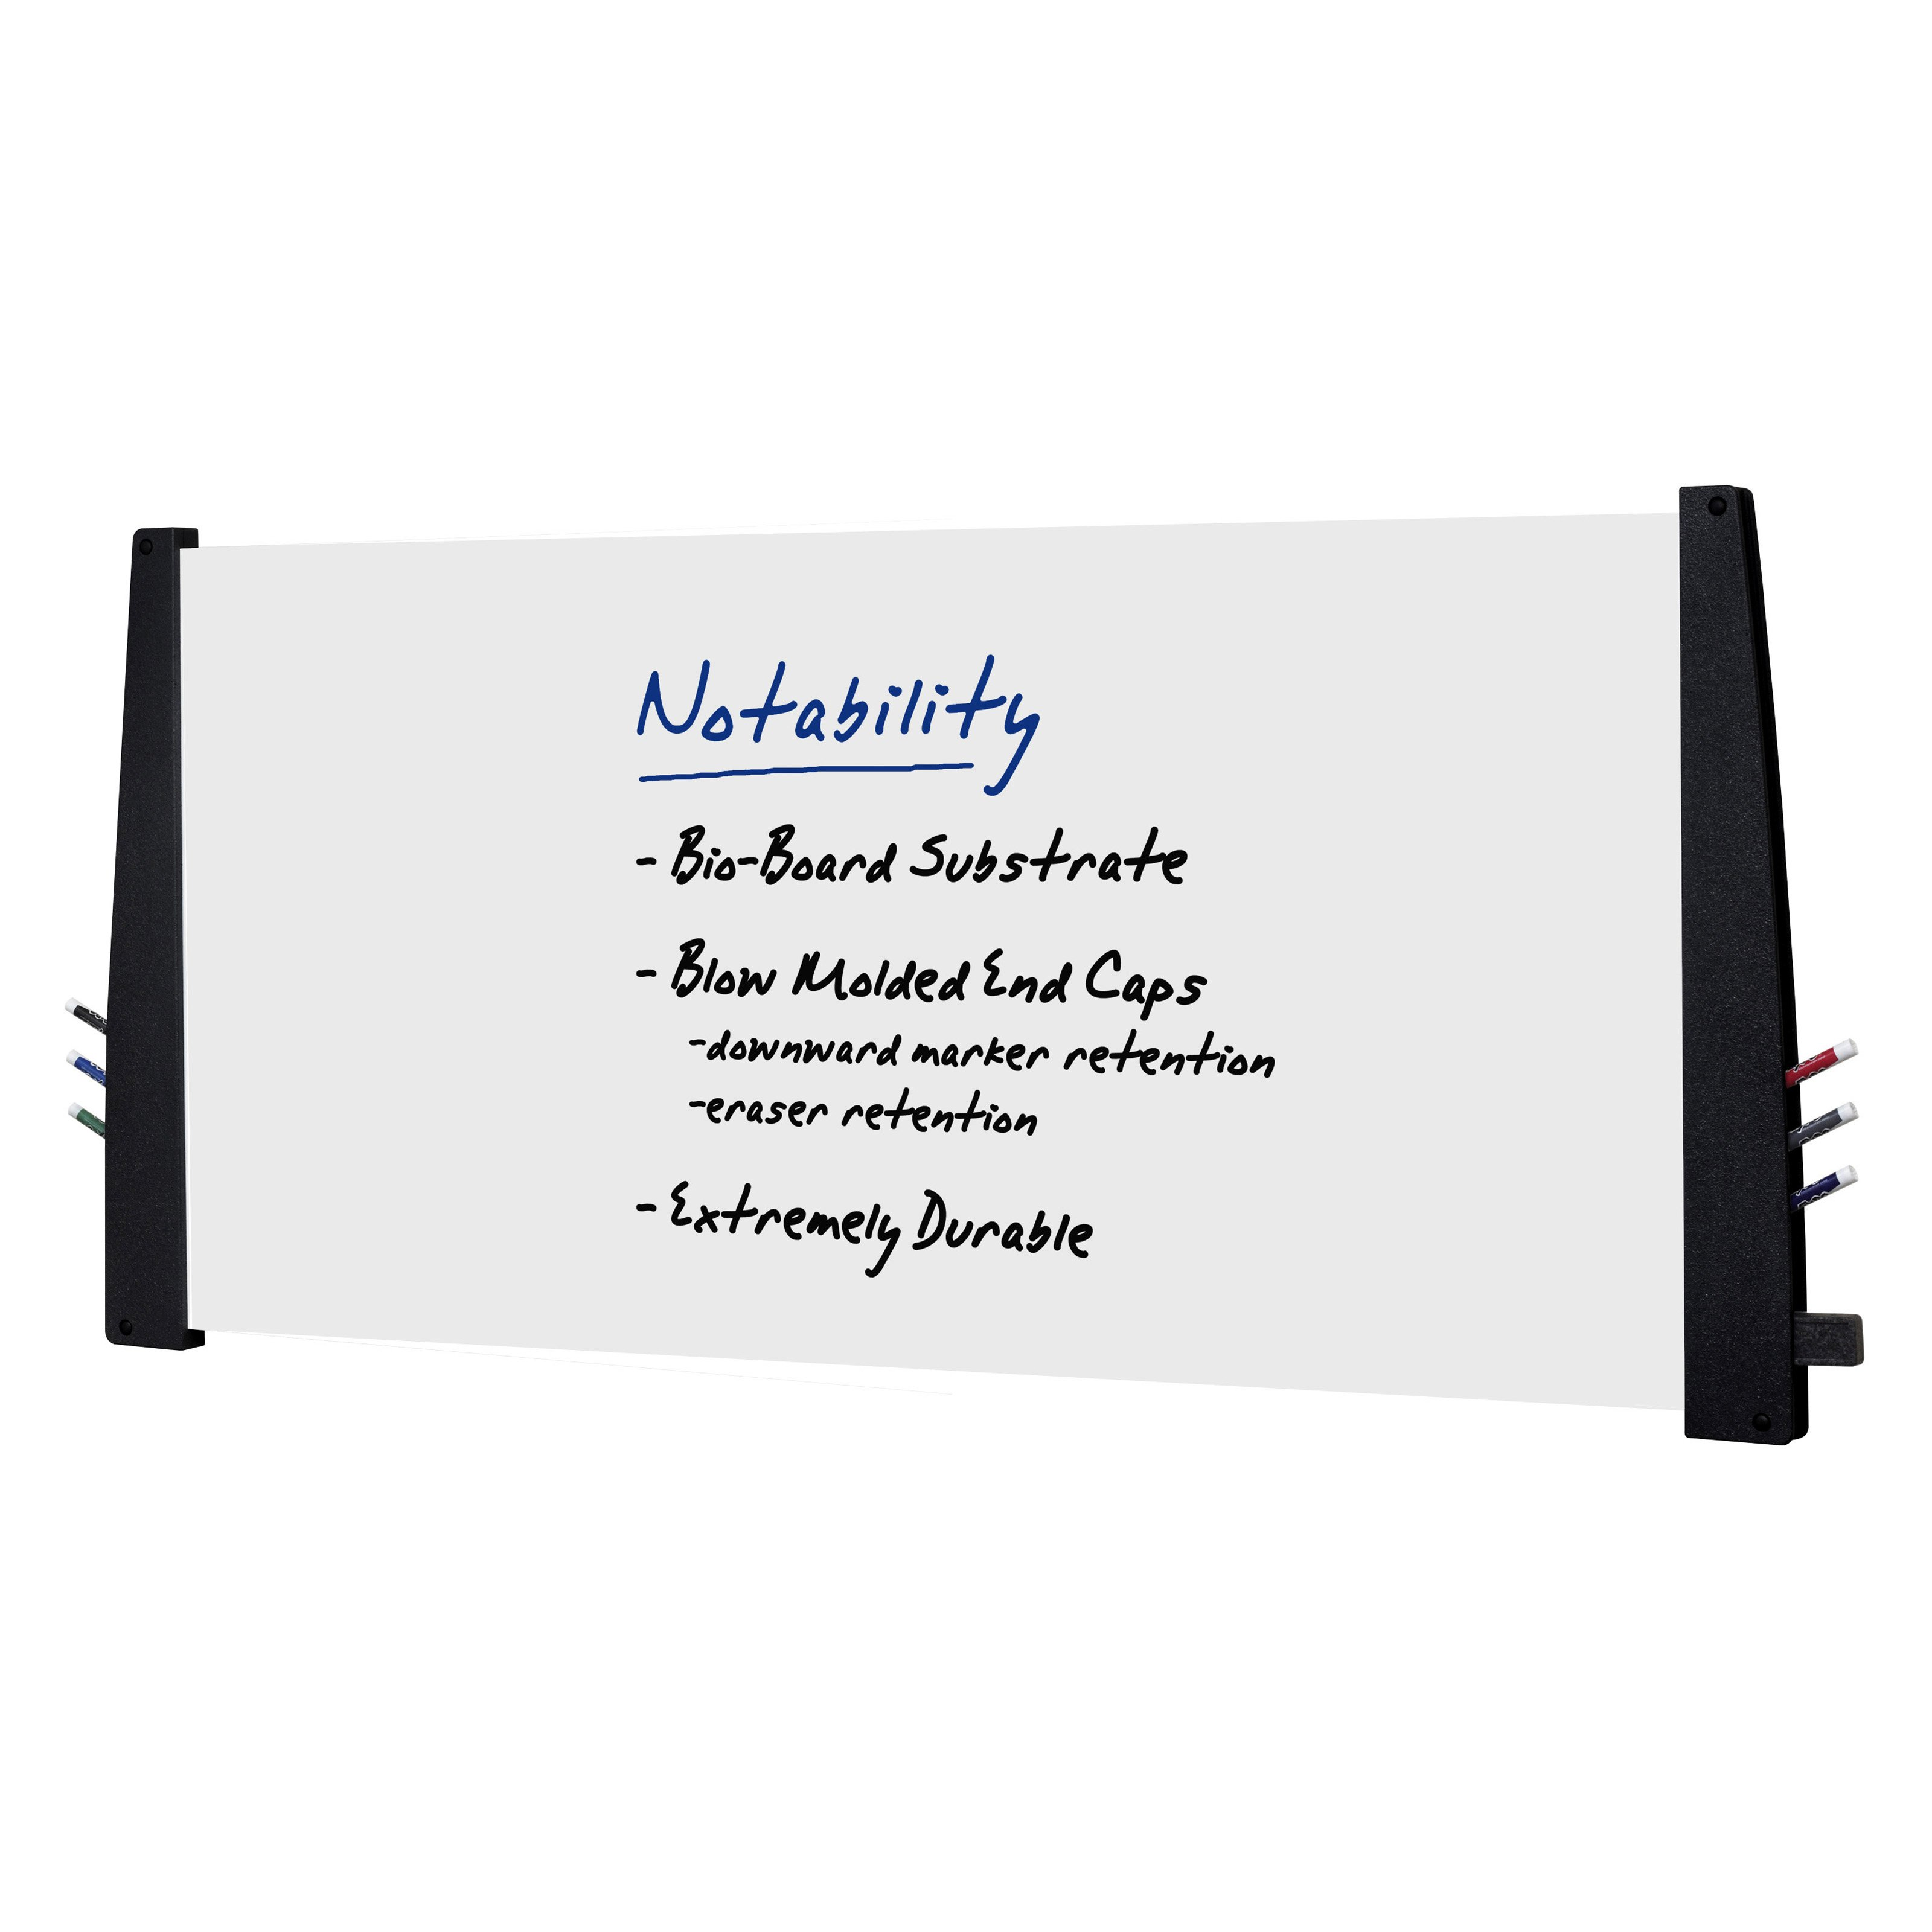 Iceberg 72 x 36 Collaboration Boards Dry Erase Board